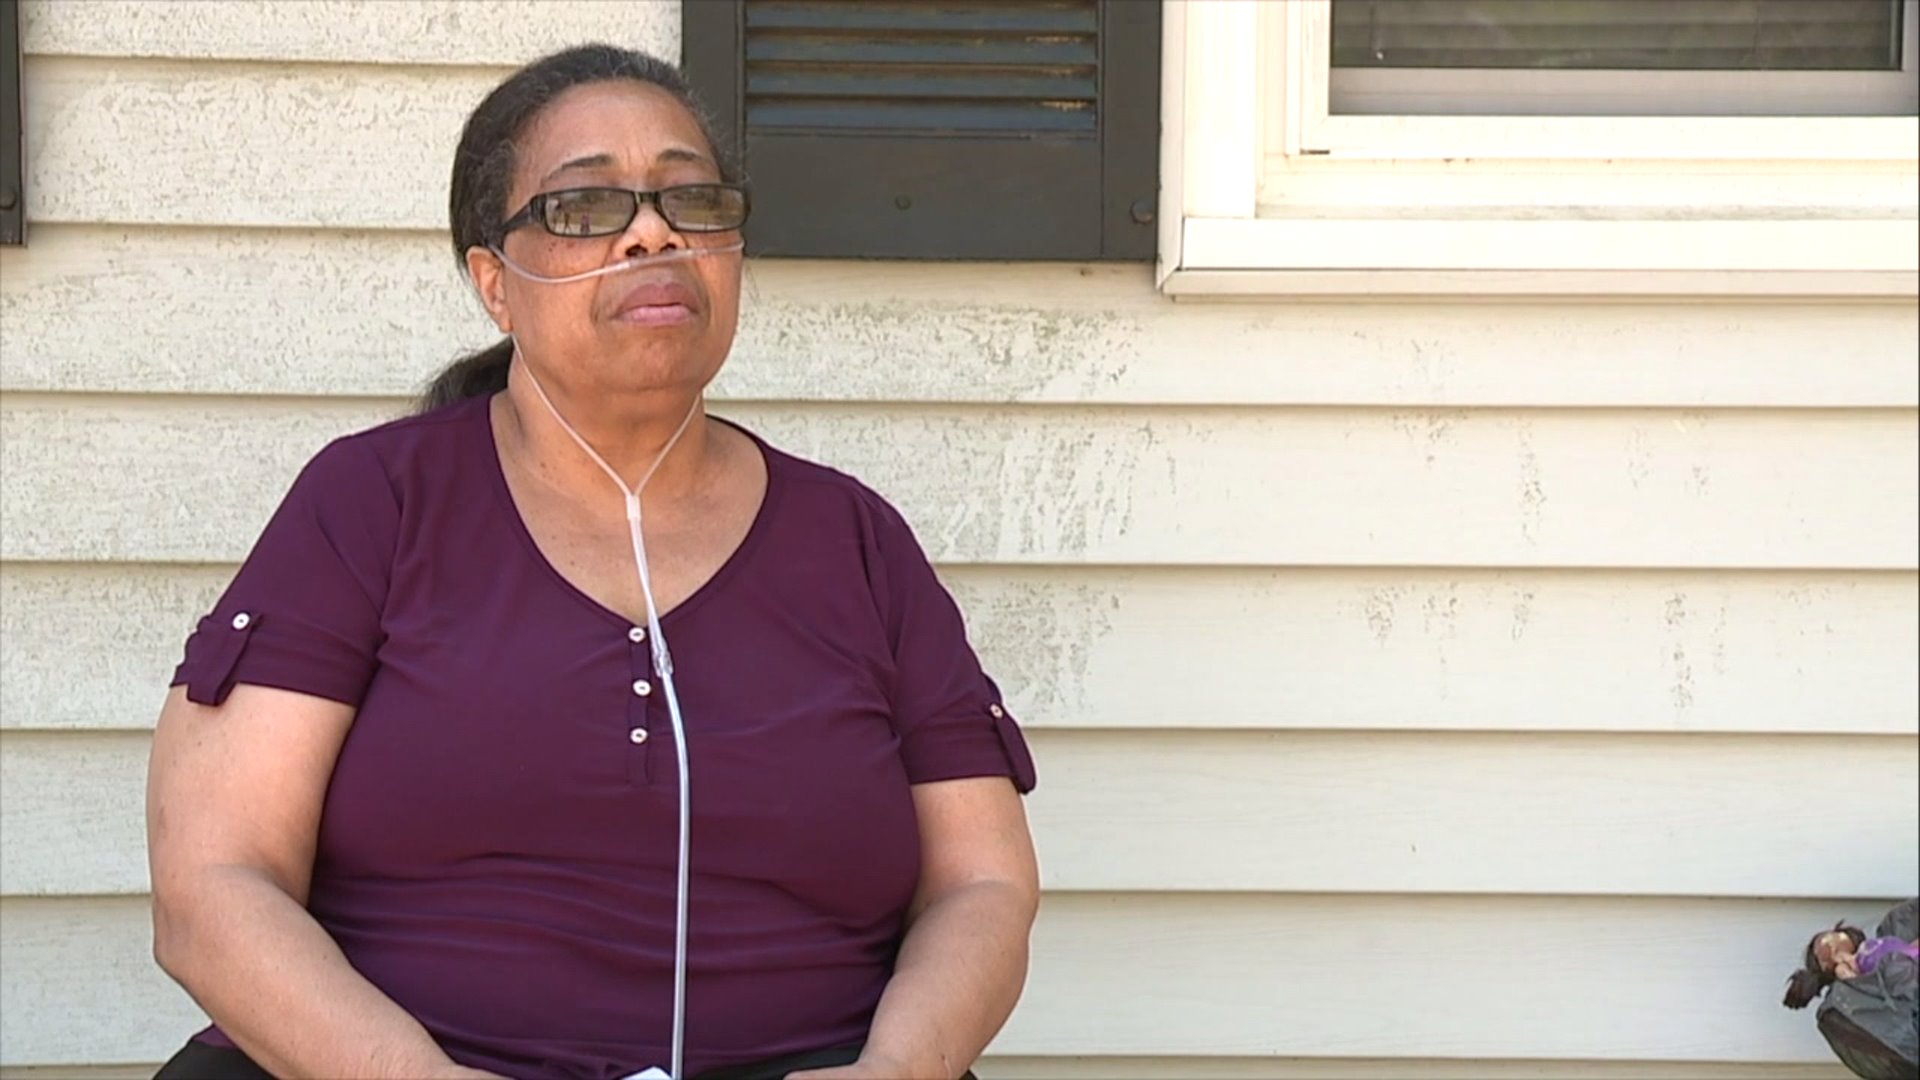 High Point woman receives automated letter to shut off utilities